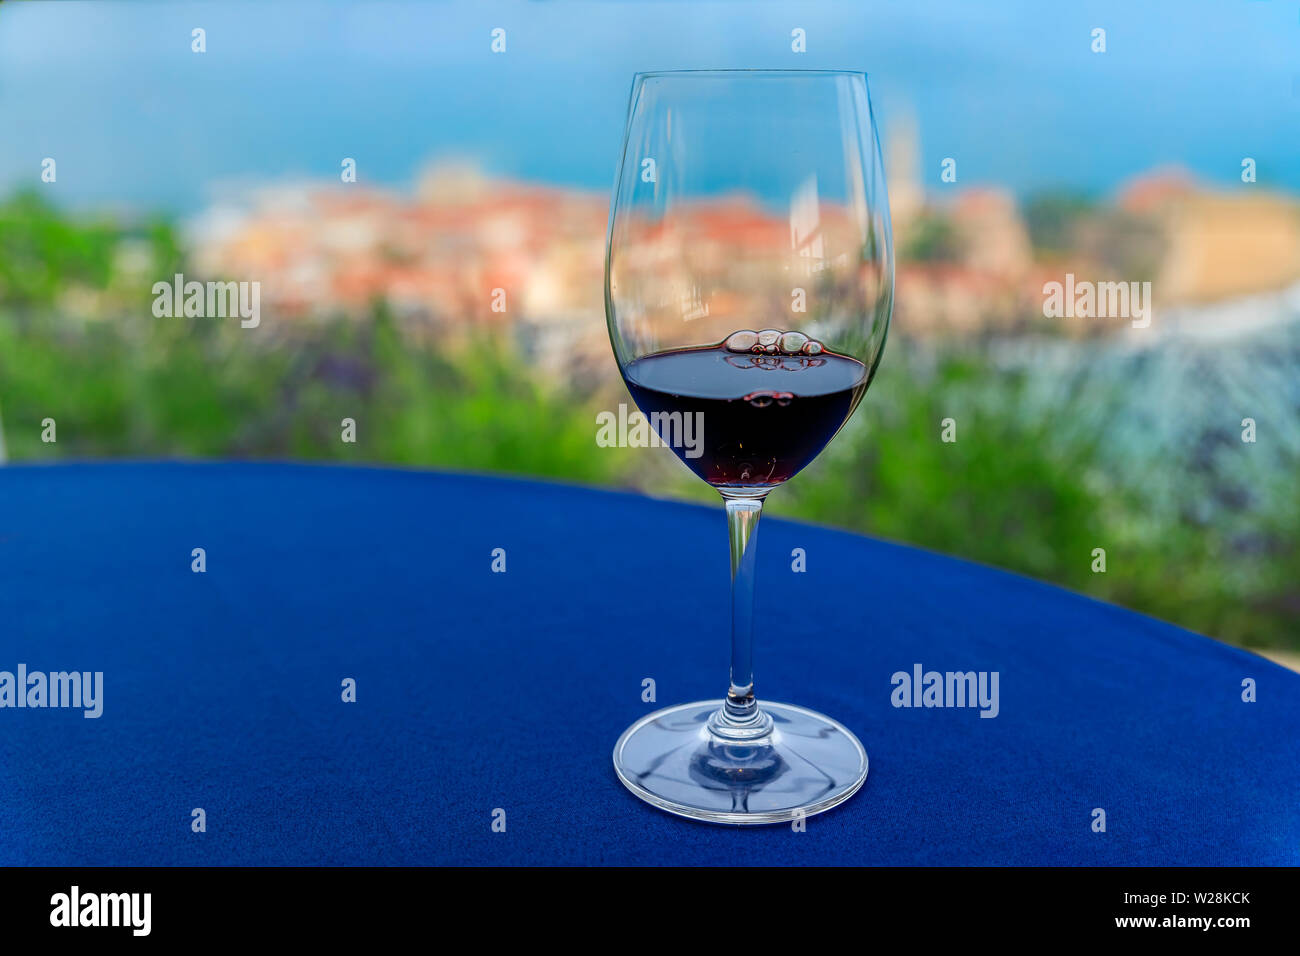 Glass of local red wine Vranac on the table at a restaurant with the Budva Old Town, and the Adriatic Sea in Montenegro blurred in the background Stock Photo